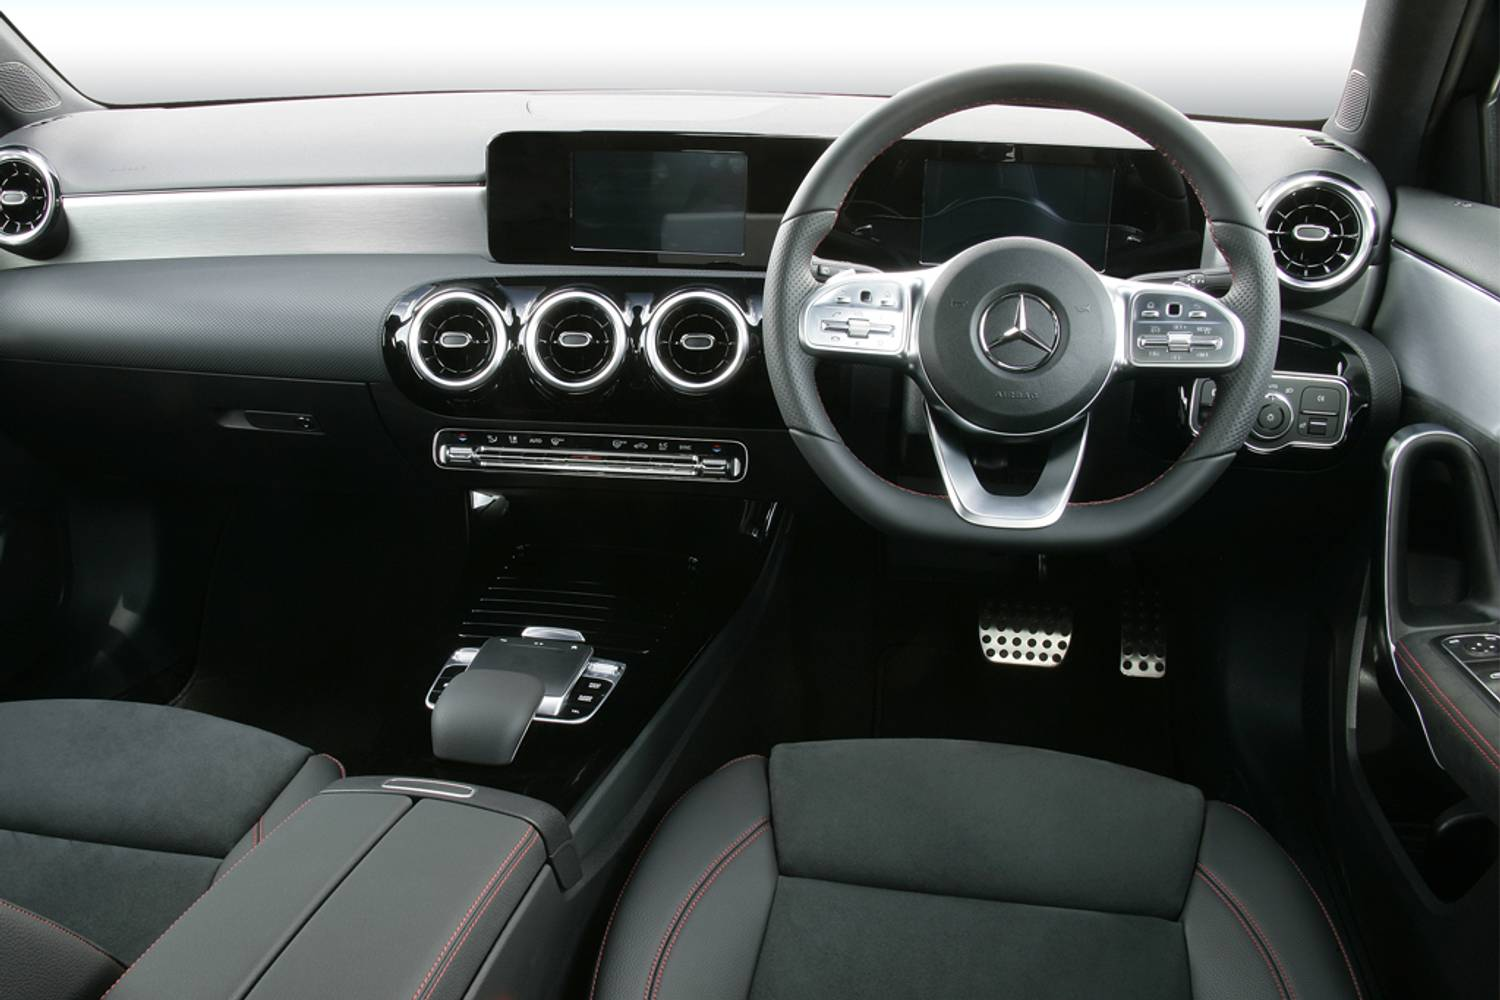 Mercedes-Benz A Class Hatchback 5dr interior